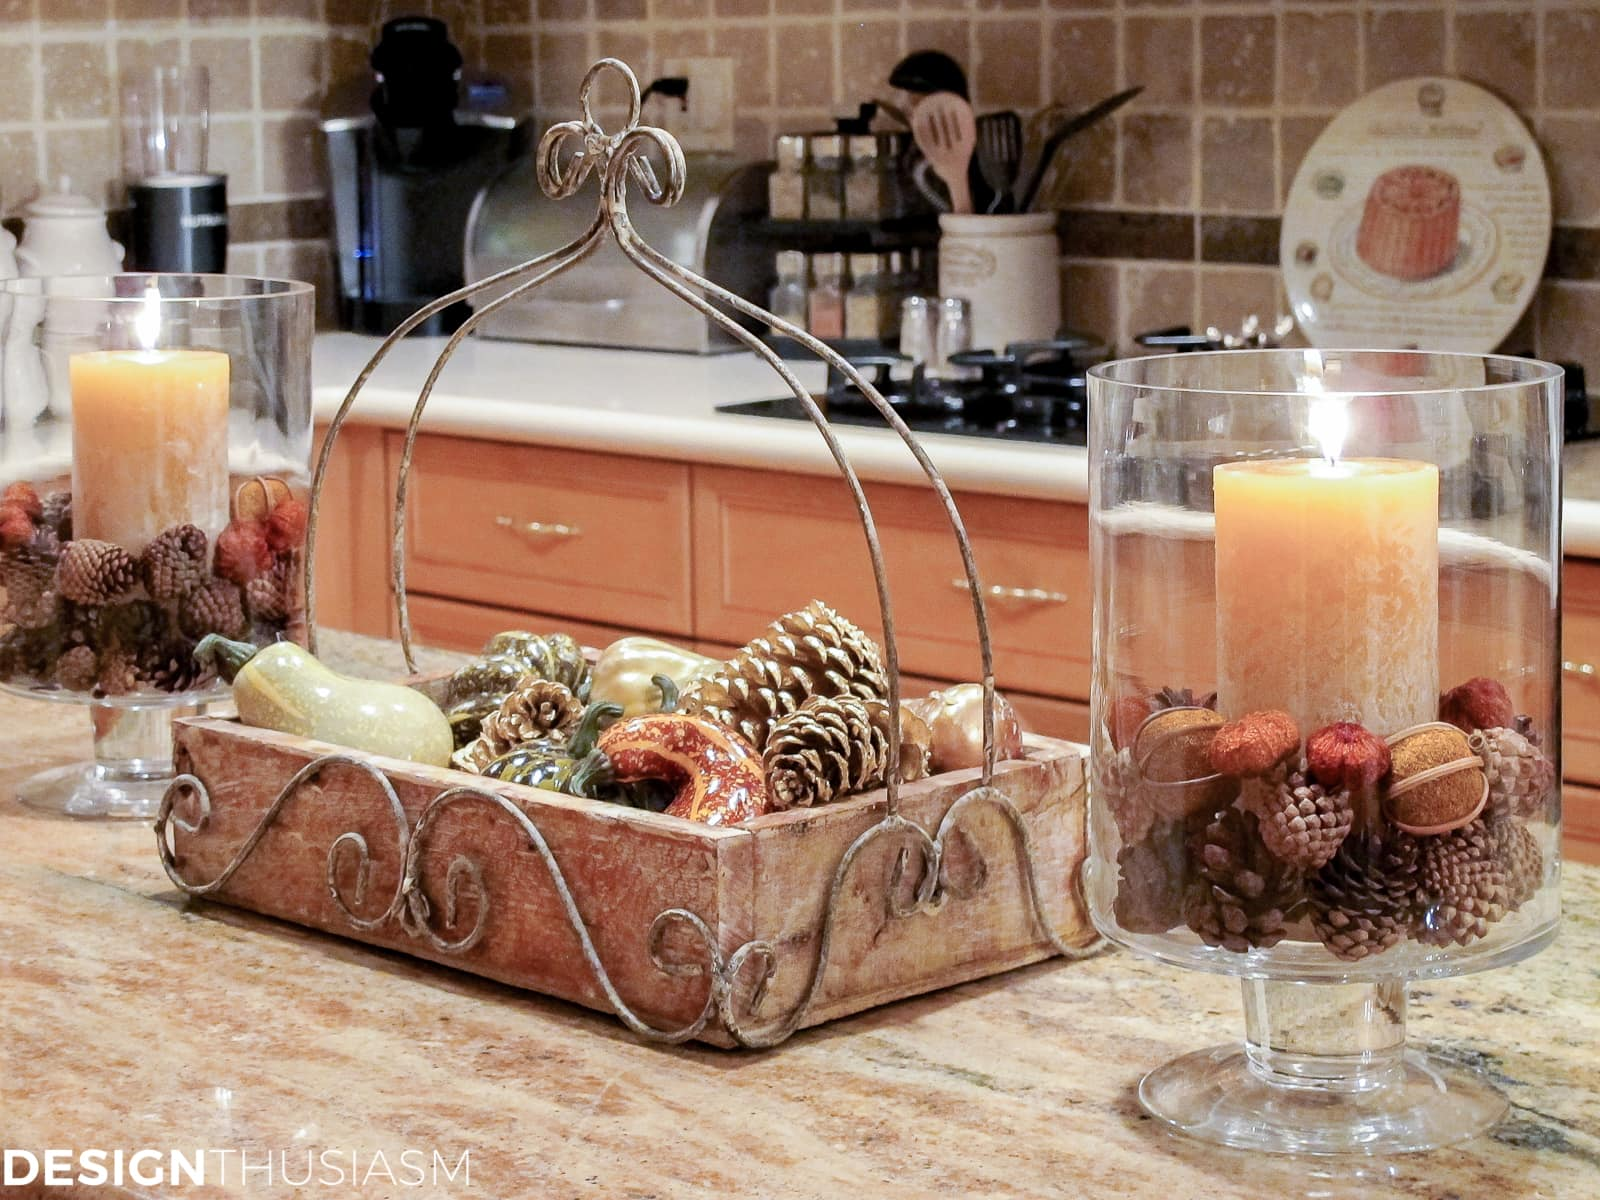 Fall Room Decor: 6 Ways to Add Autumn Warmth to Your Kitchen